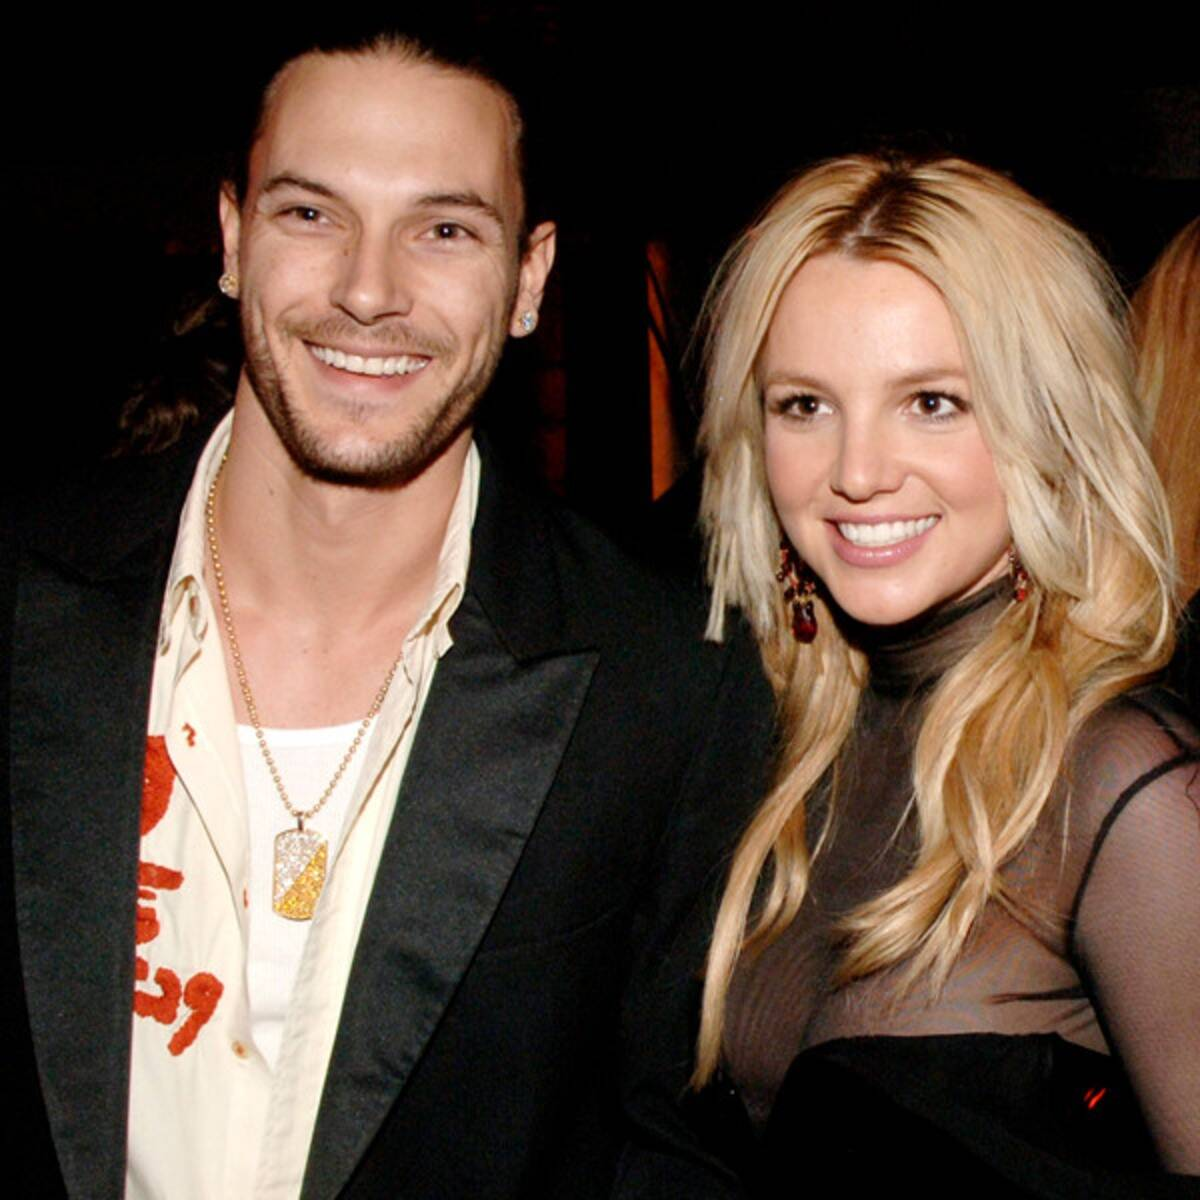 Britney Spears May Never Perform Again, According to Son Jayden